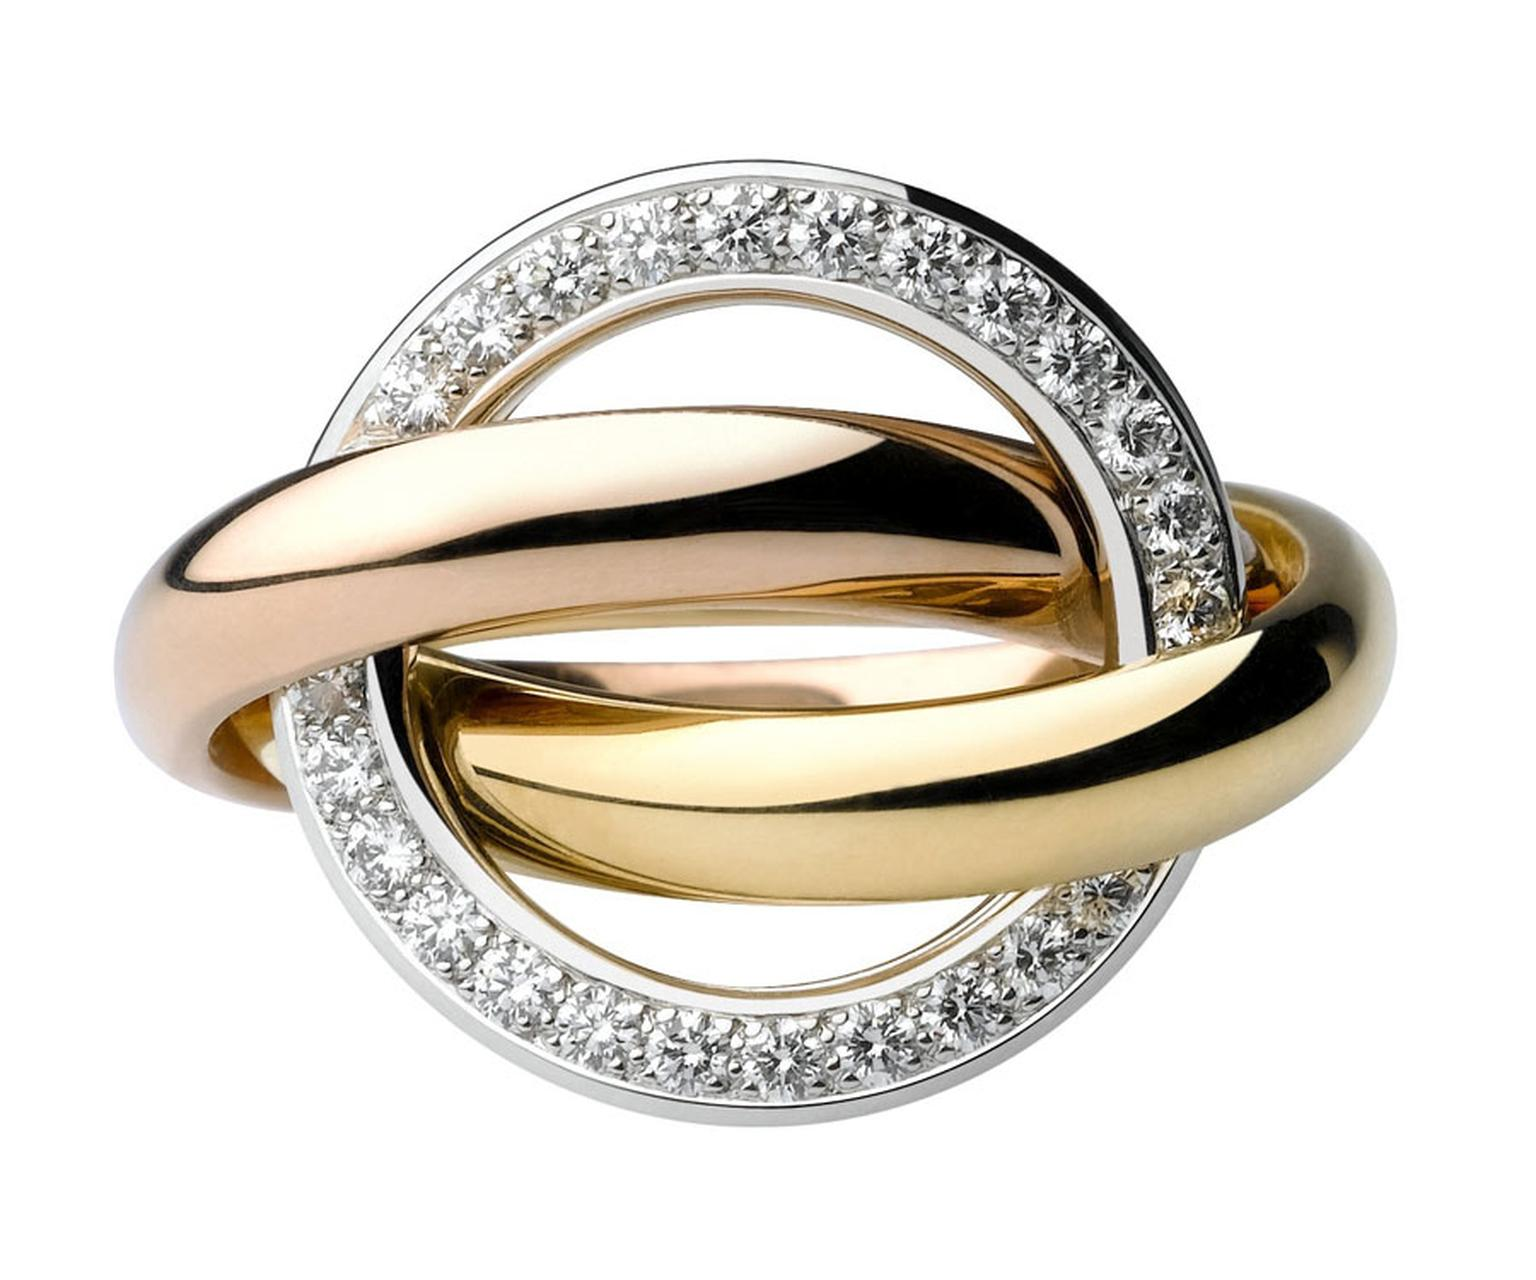 Cartier Ring Trinity Meaning